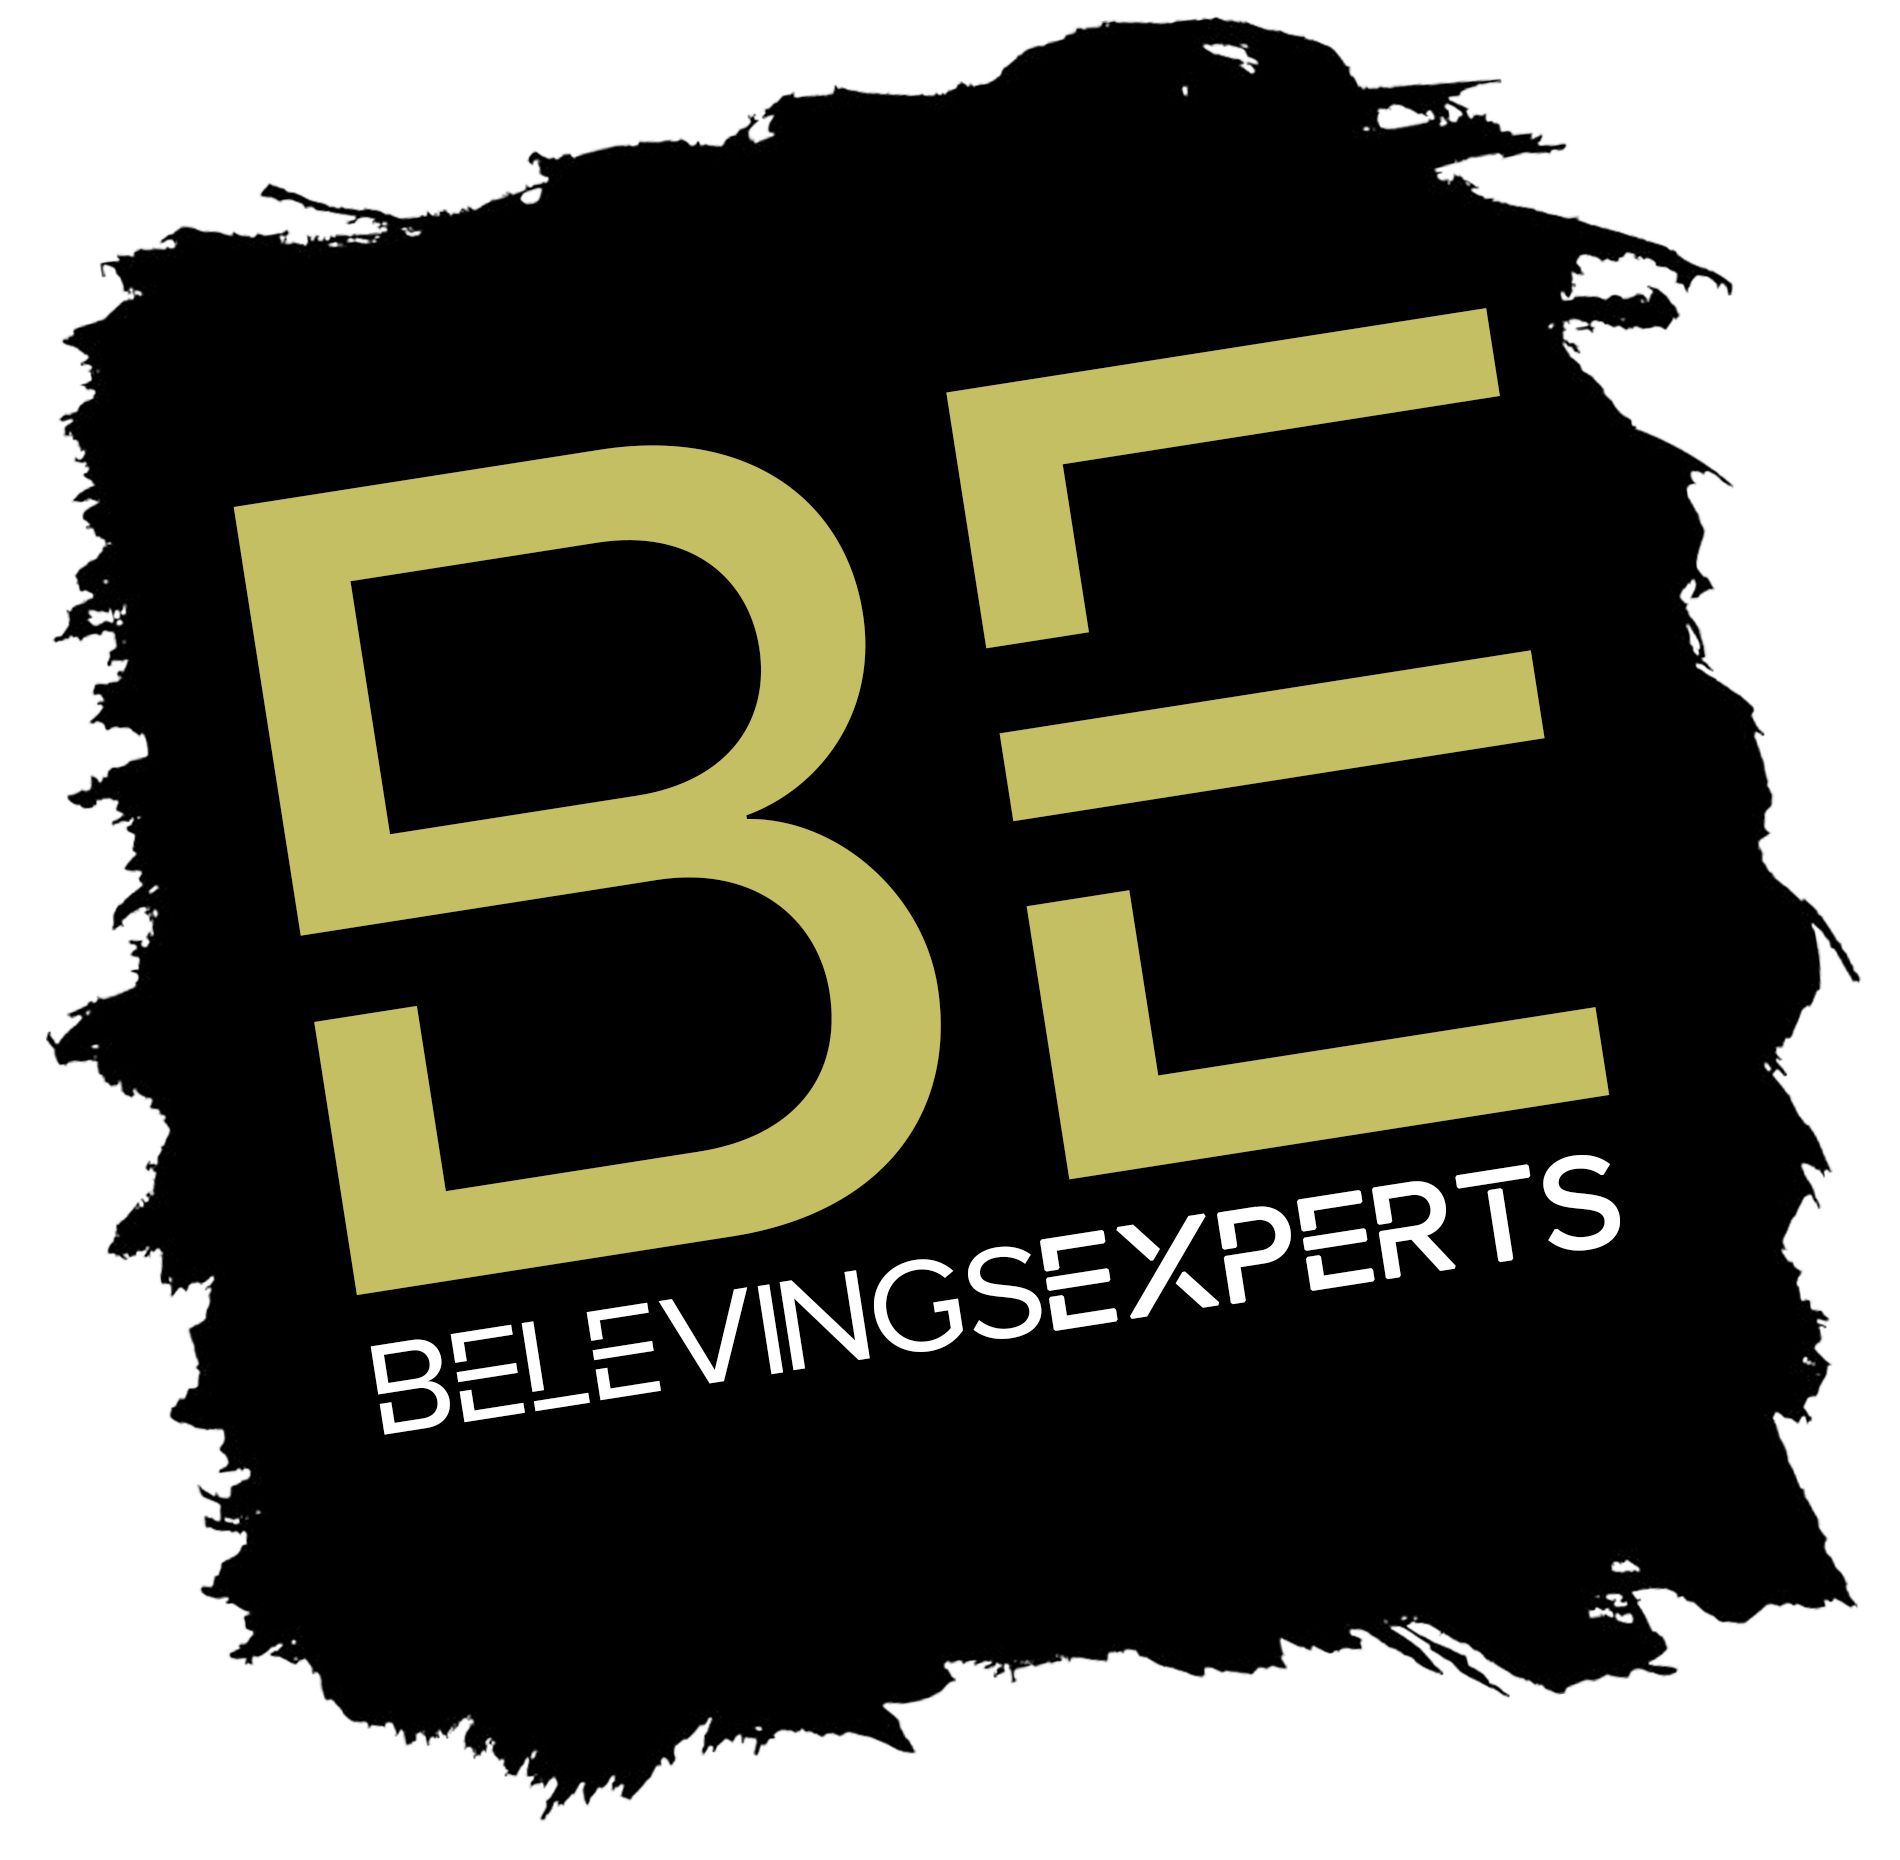 BelevingsExperts